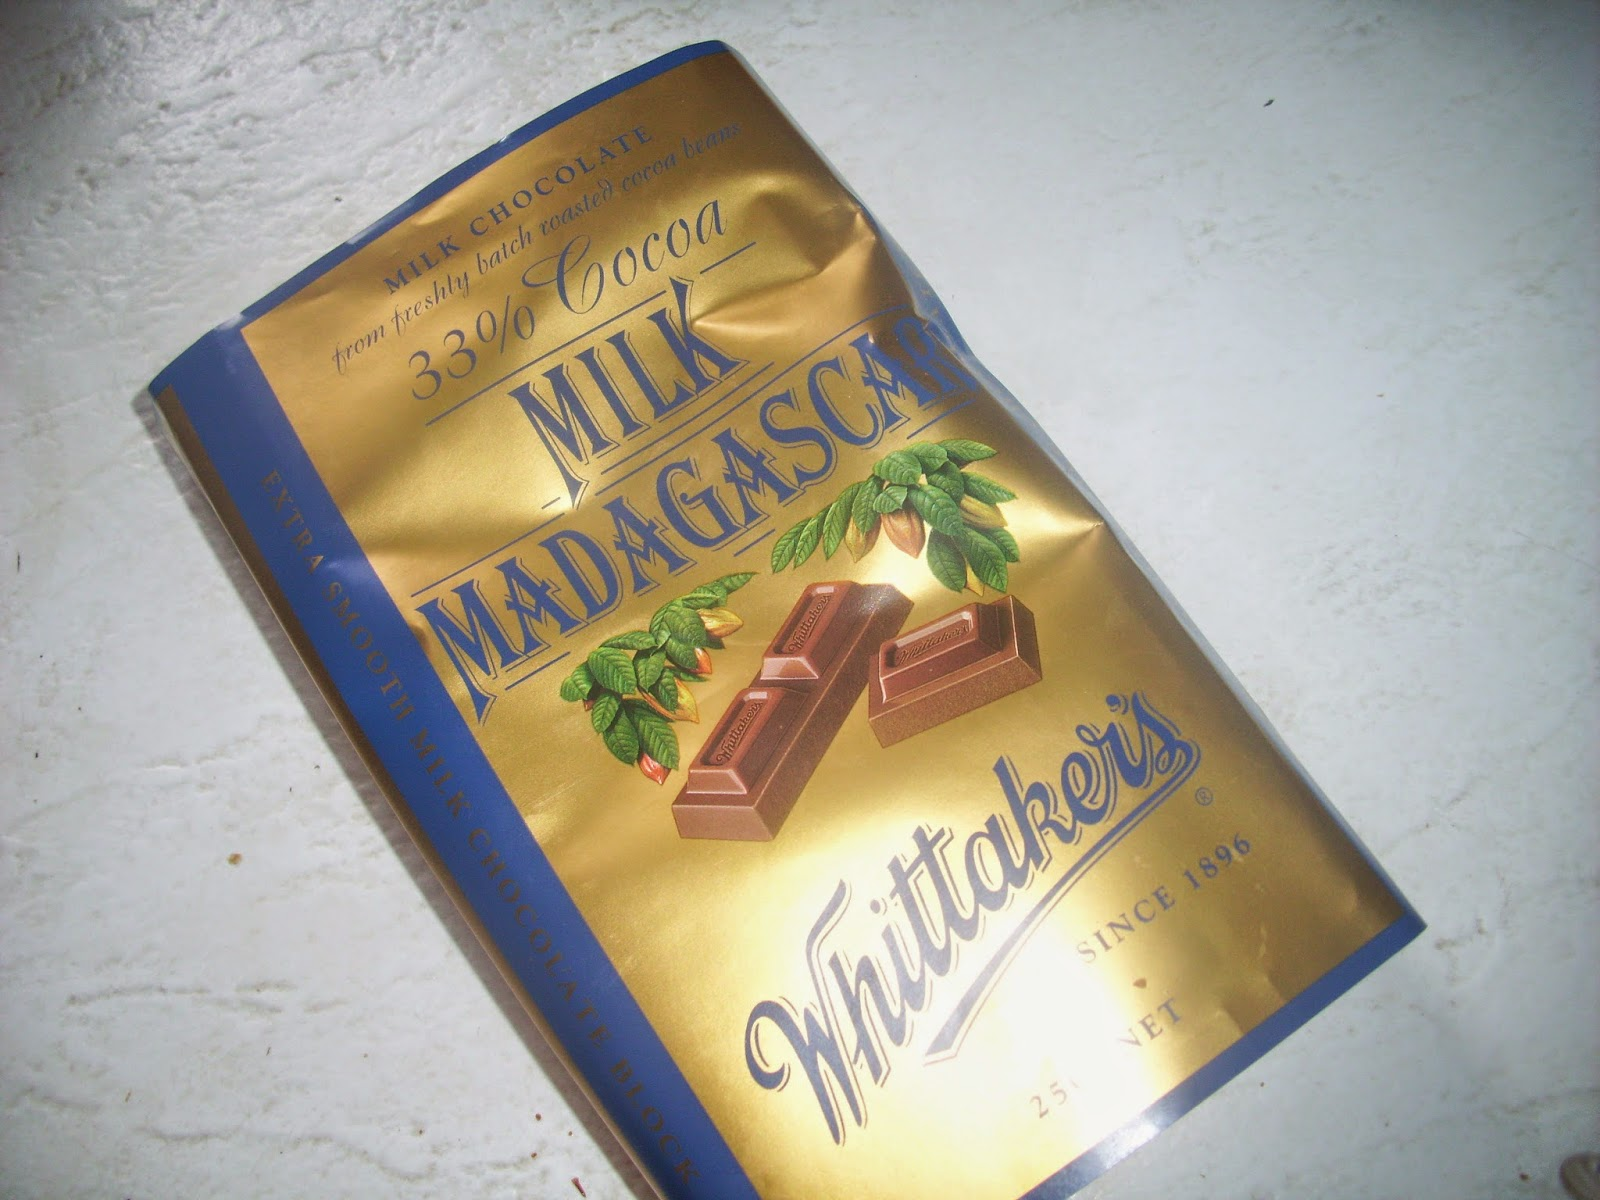 The divine milk Madagascar from Whittaker's.